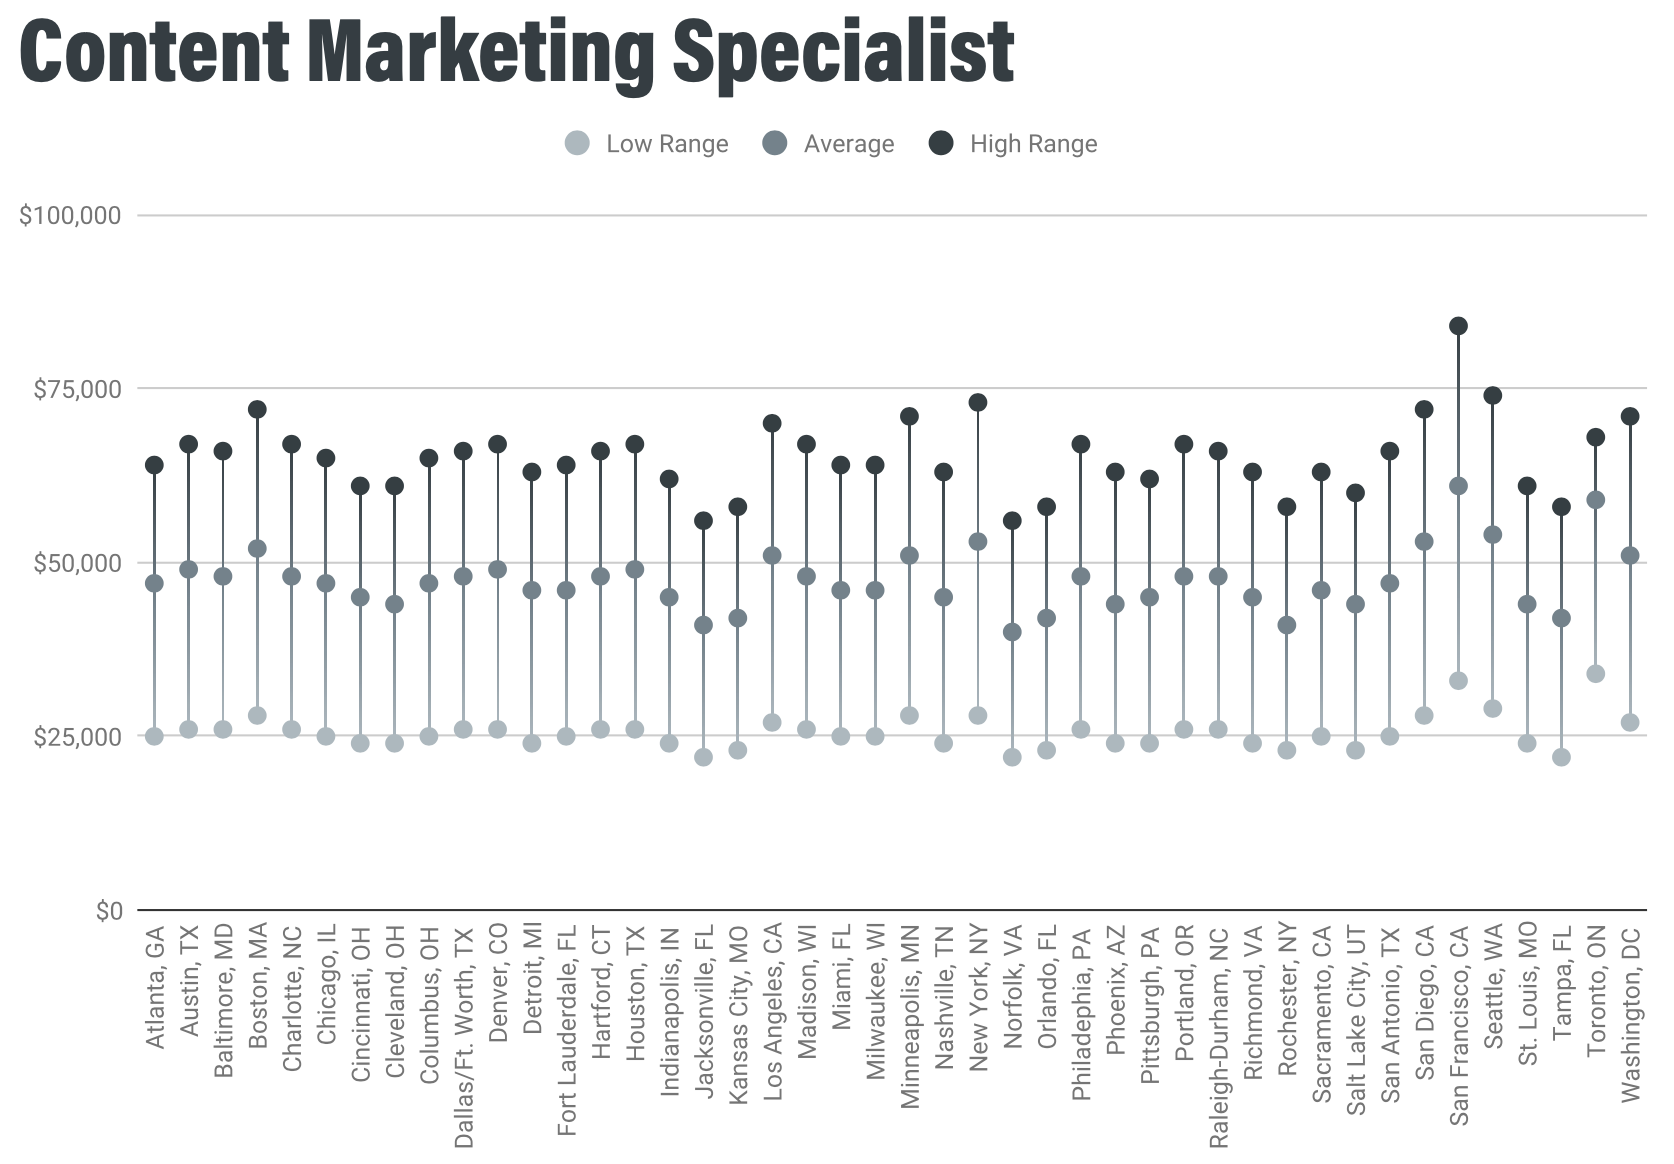 /uploads/2020/01/Content_Marketing_Specialist_Salaries.png